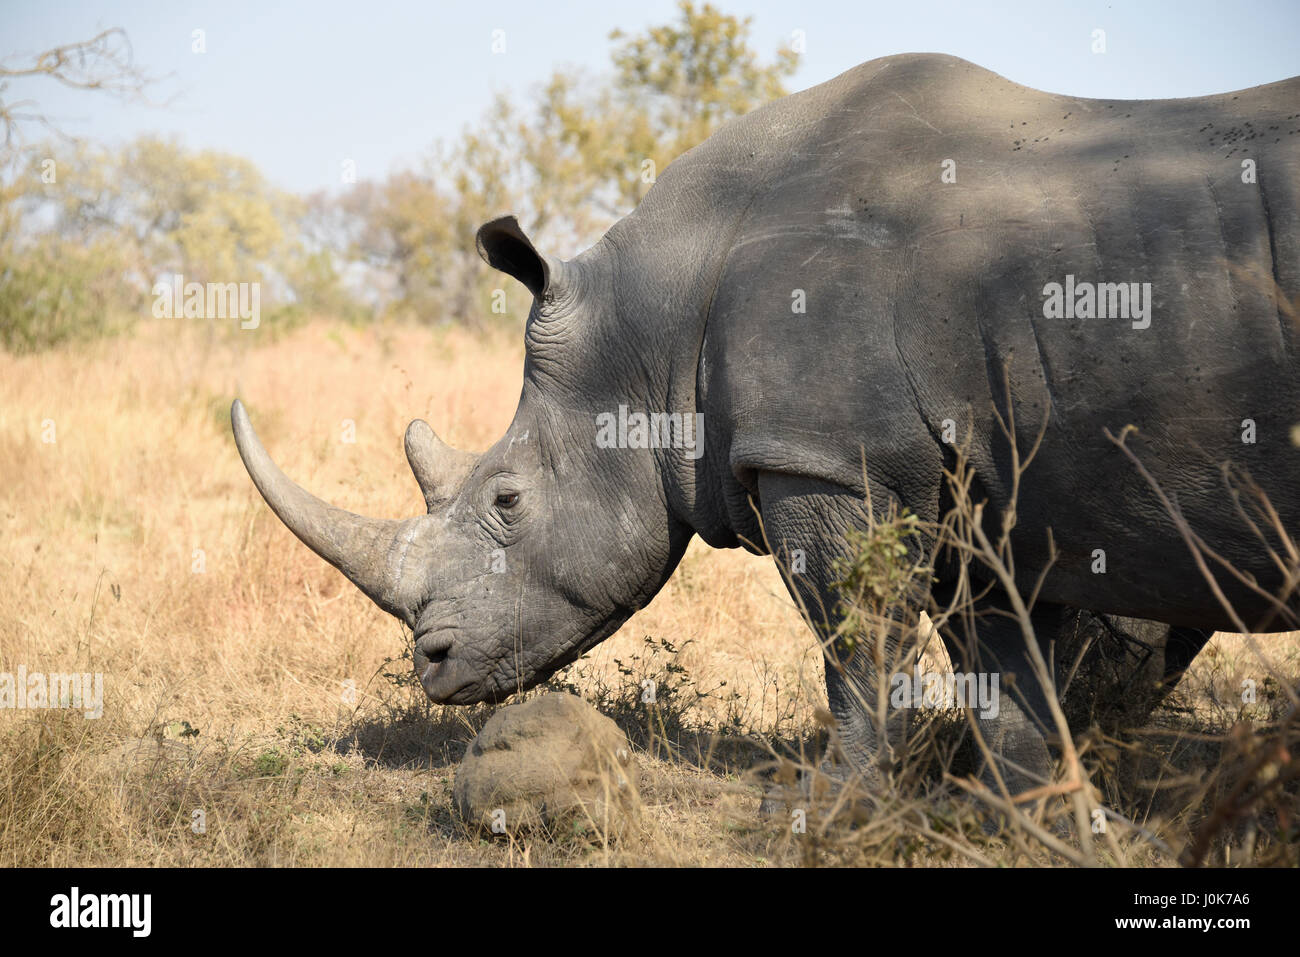 White rhino standing still in the shade of a tree in Kruger National Park - Stock Image